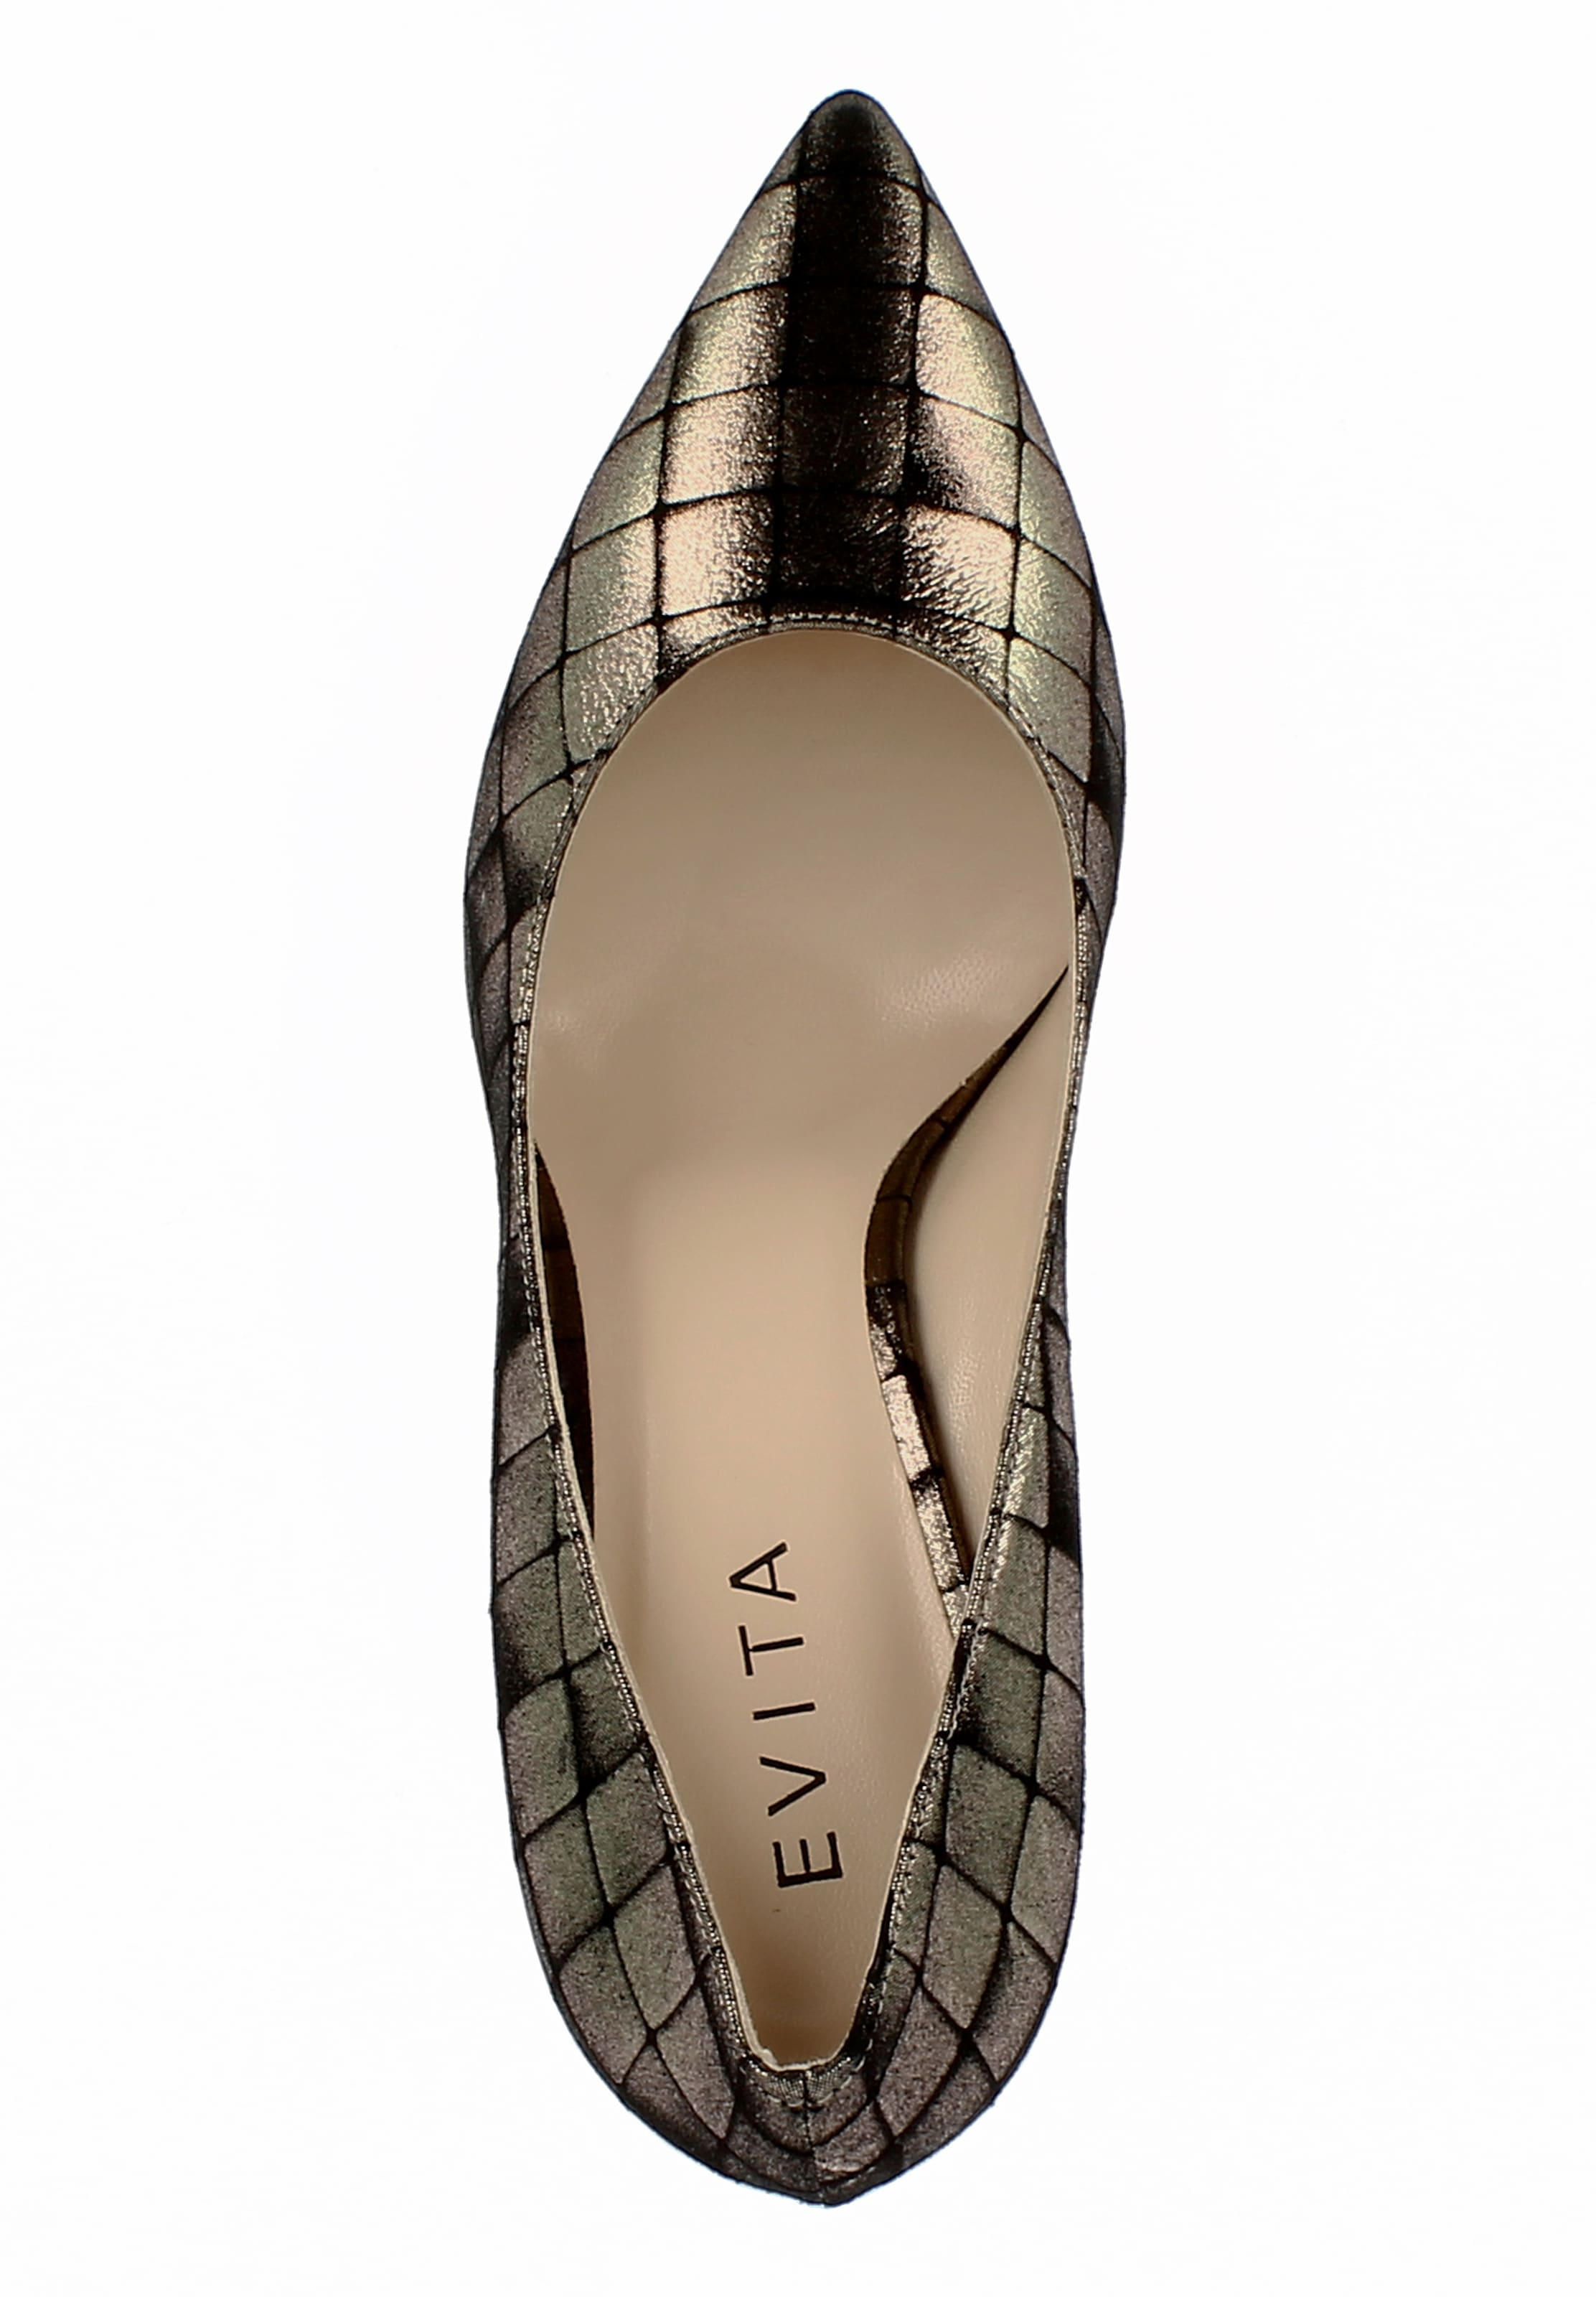 'aria' KittSchwarz In Evita KittSchwarz Evita Pumps 'aria' Pumps In BCxerdo